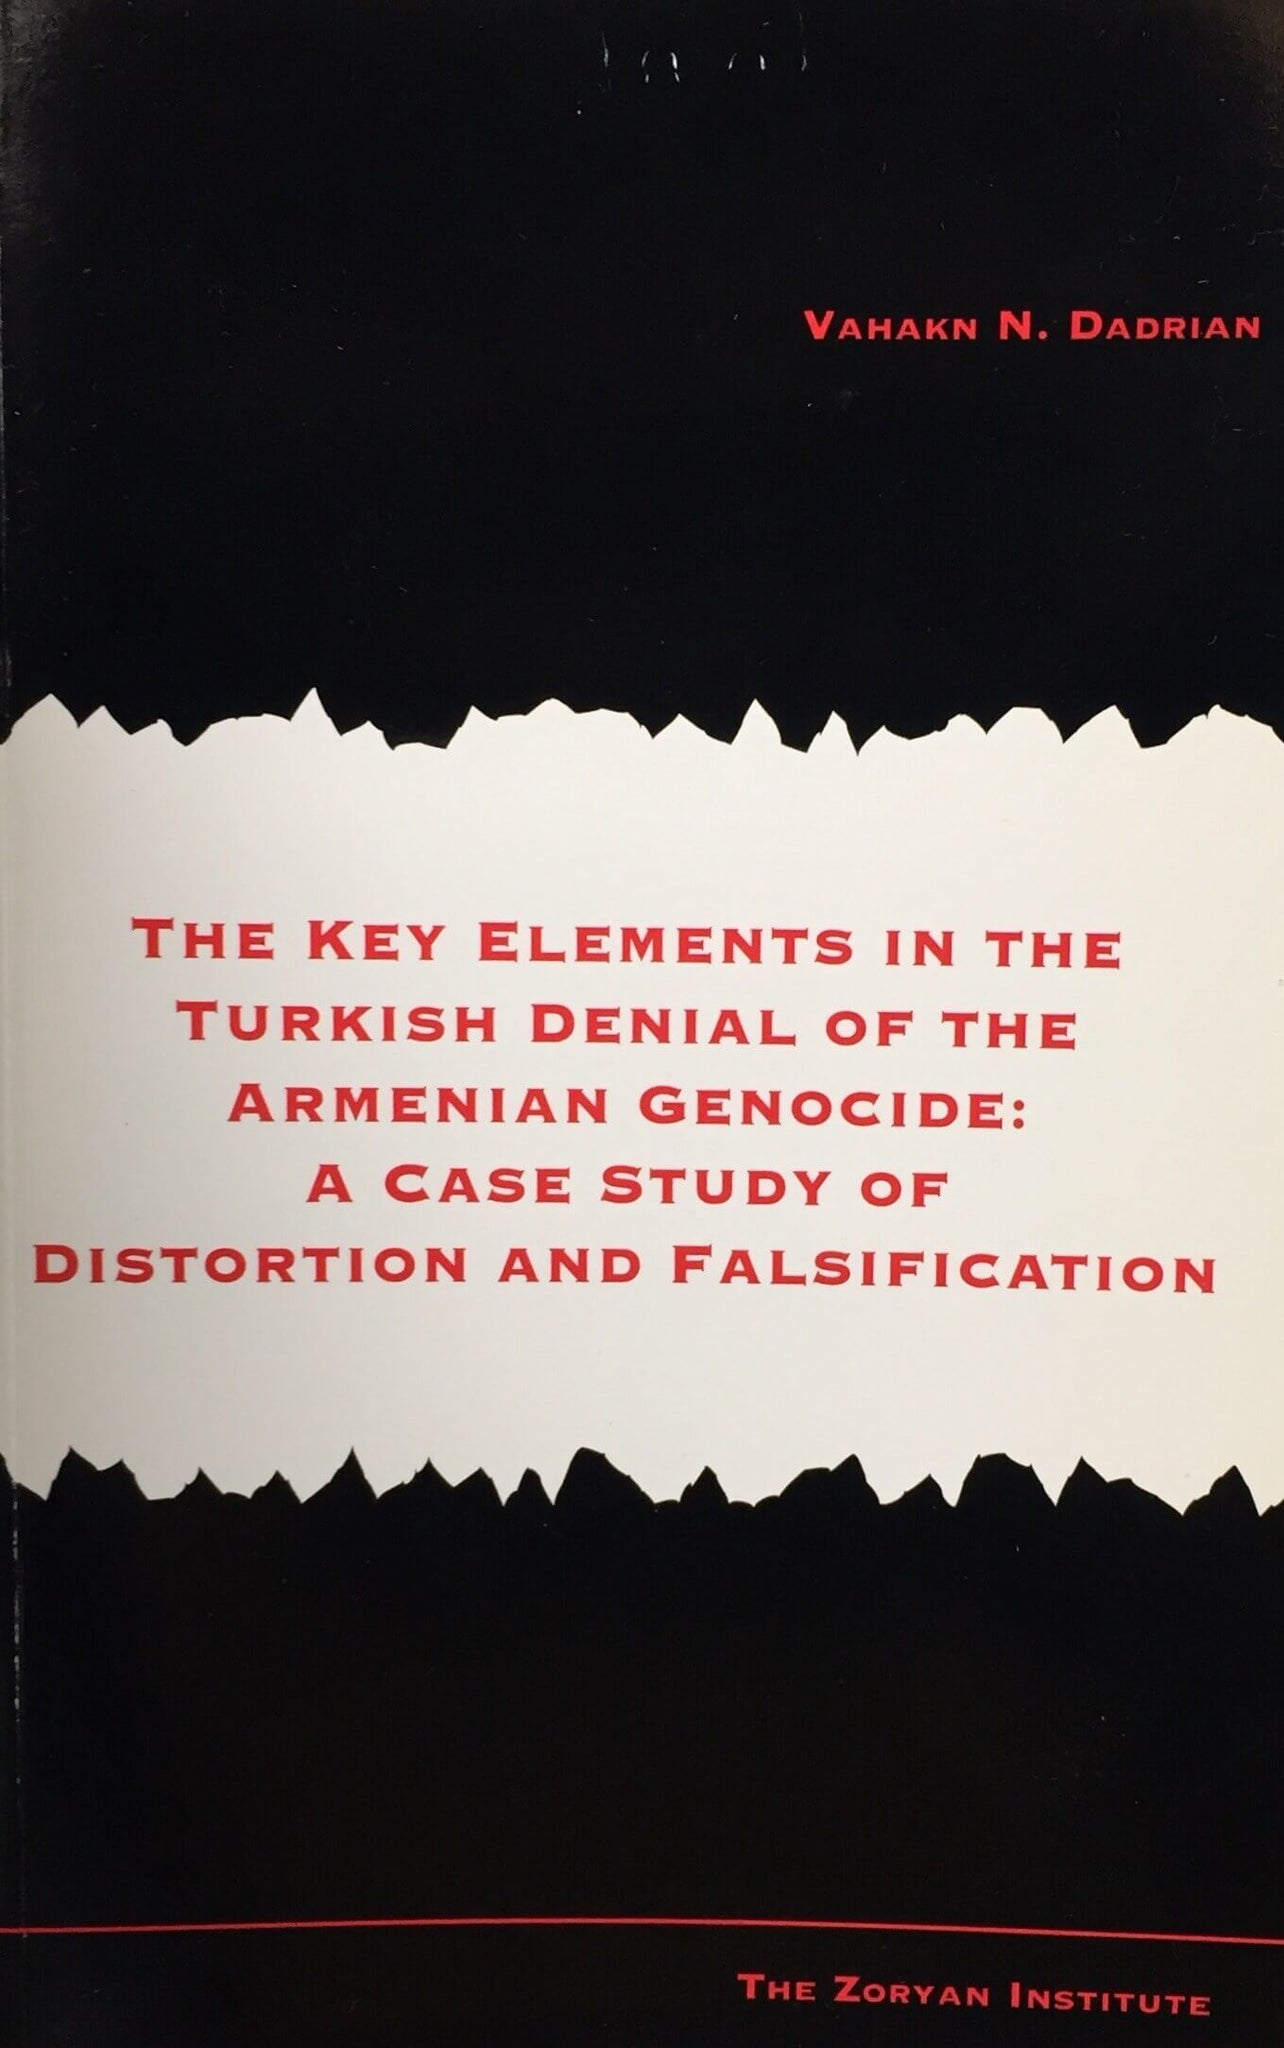 KEY ELEMENTS IN THE TURKISH DENIAL OF THE ARMENIAN GENOCIDE: